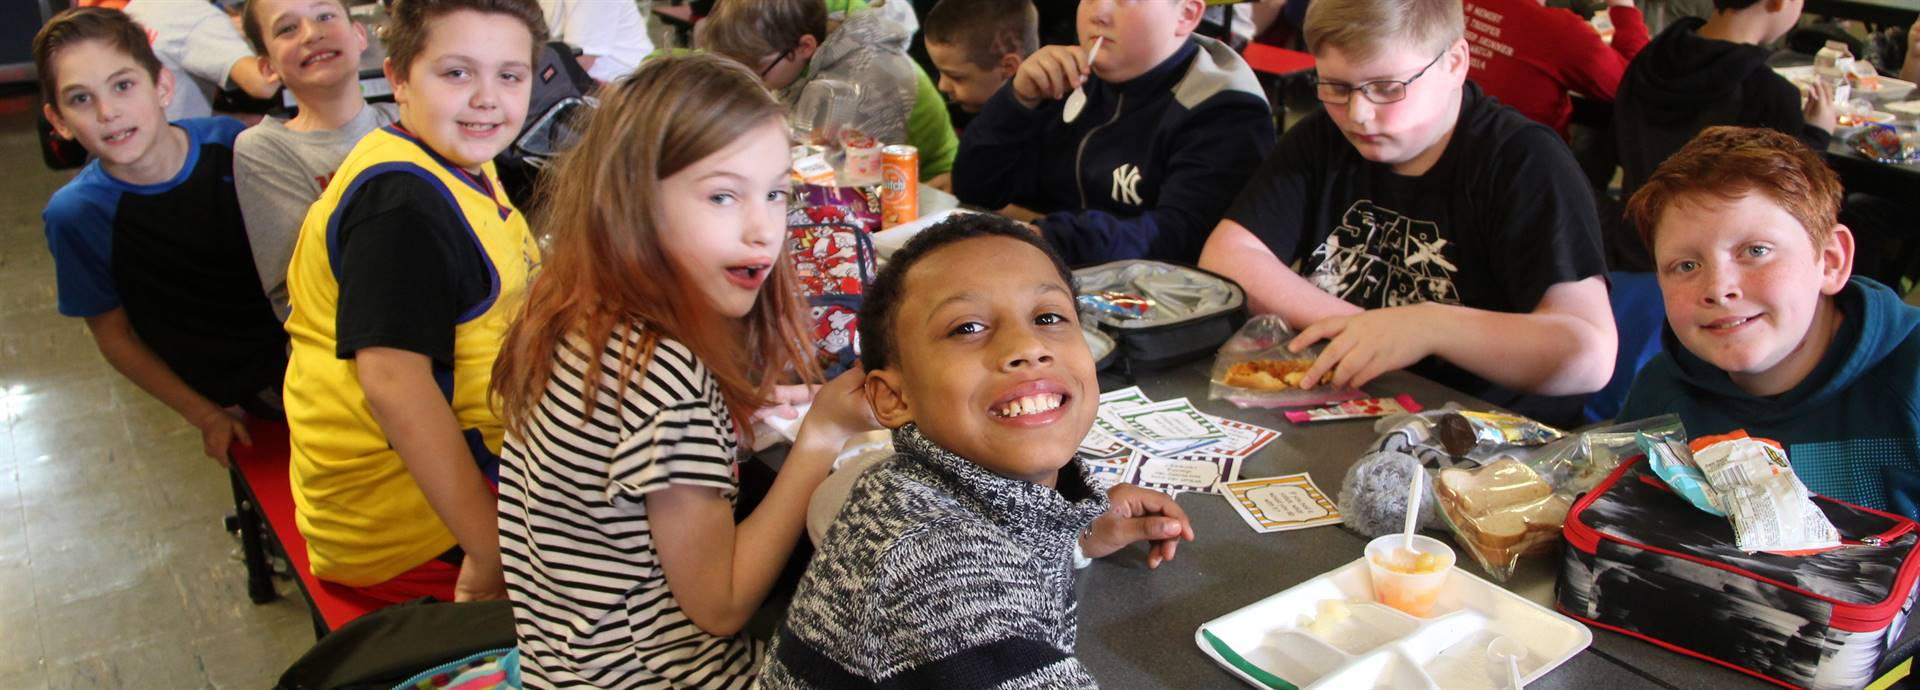 chenango bridge students smiling at lunch